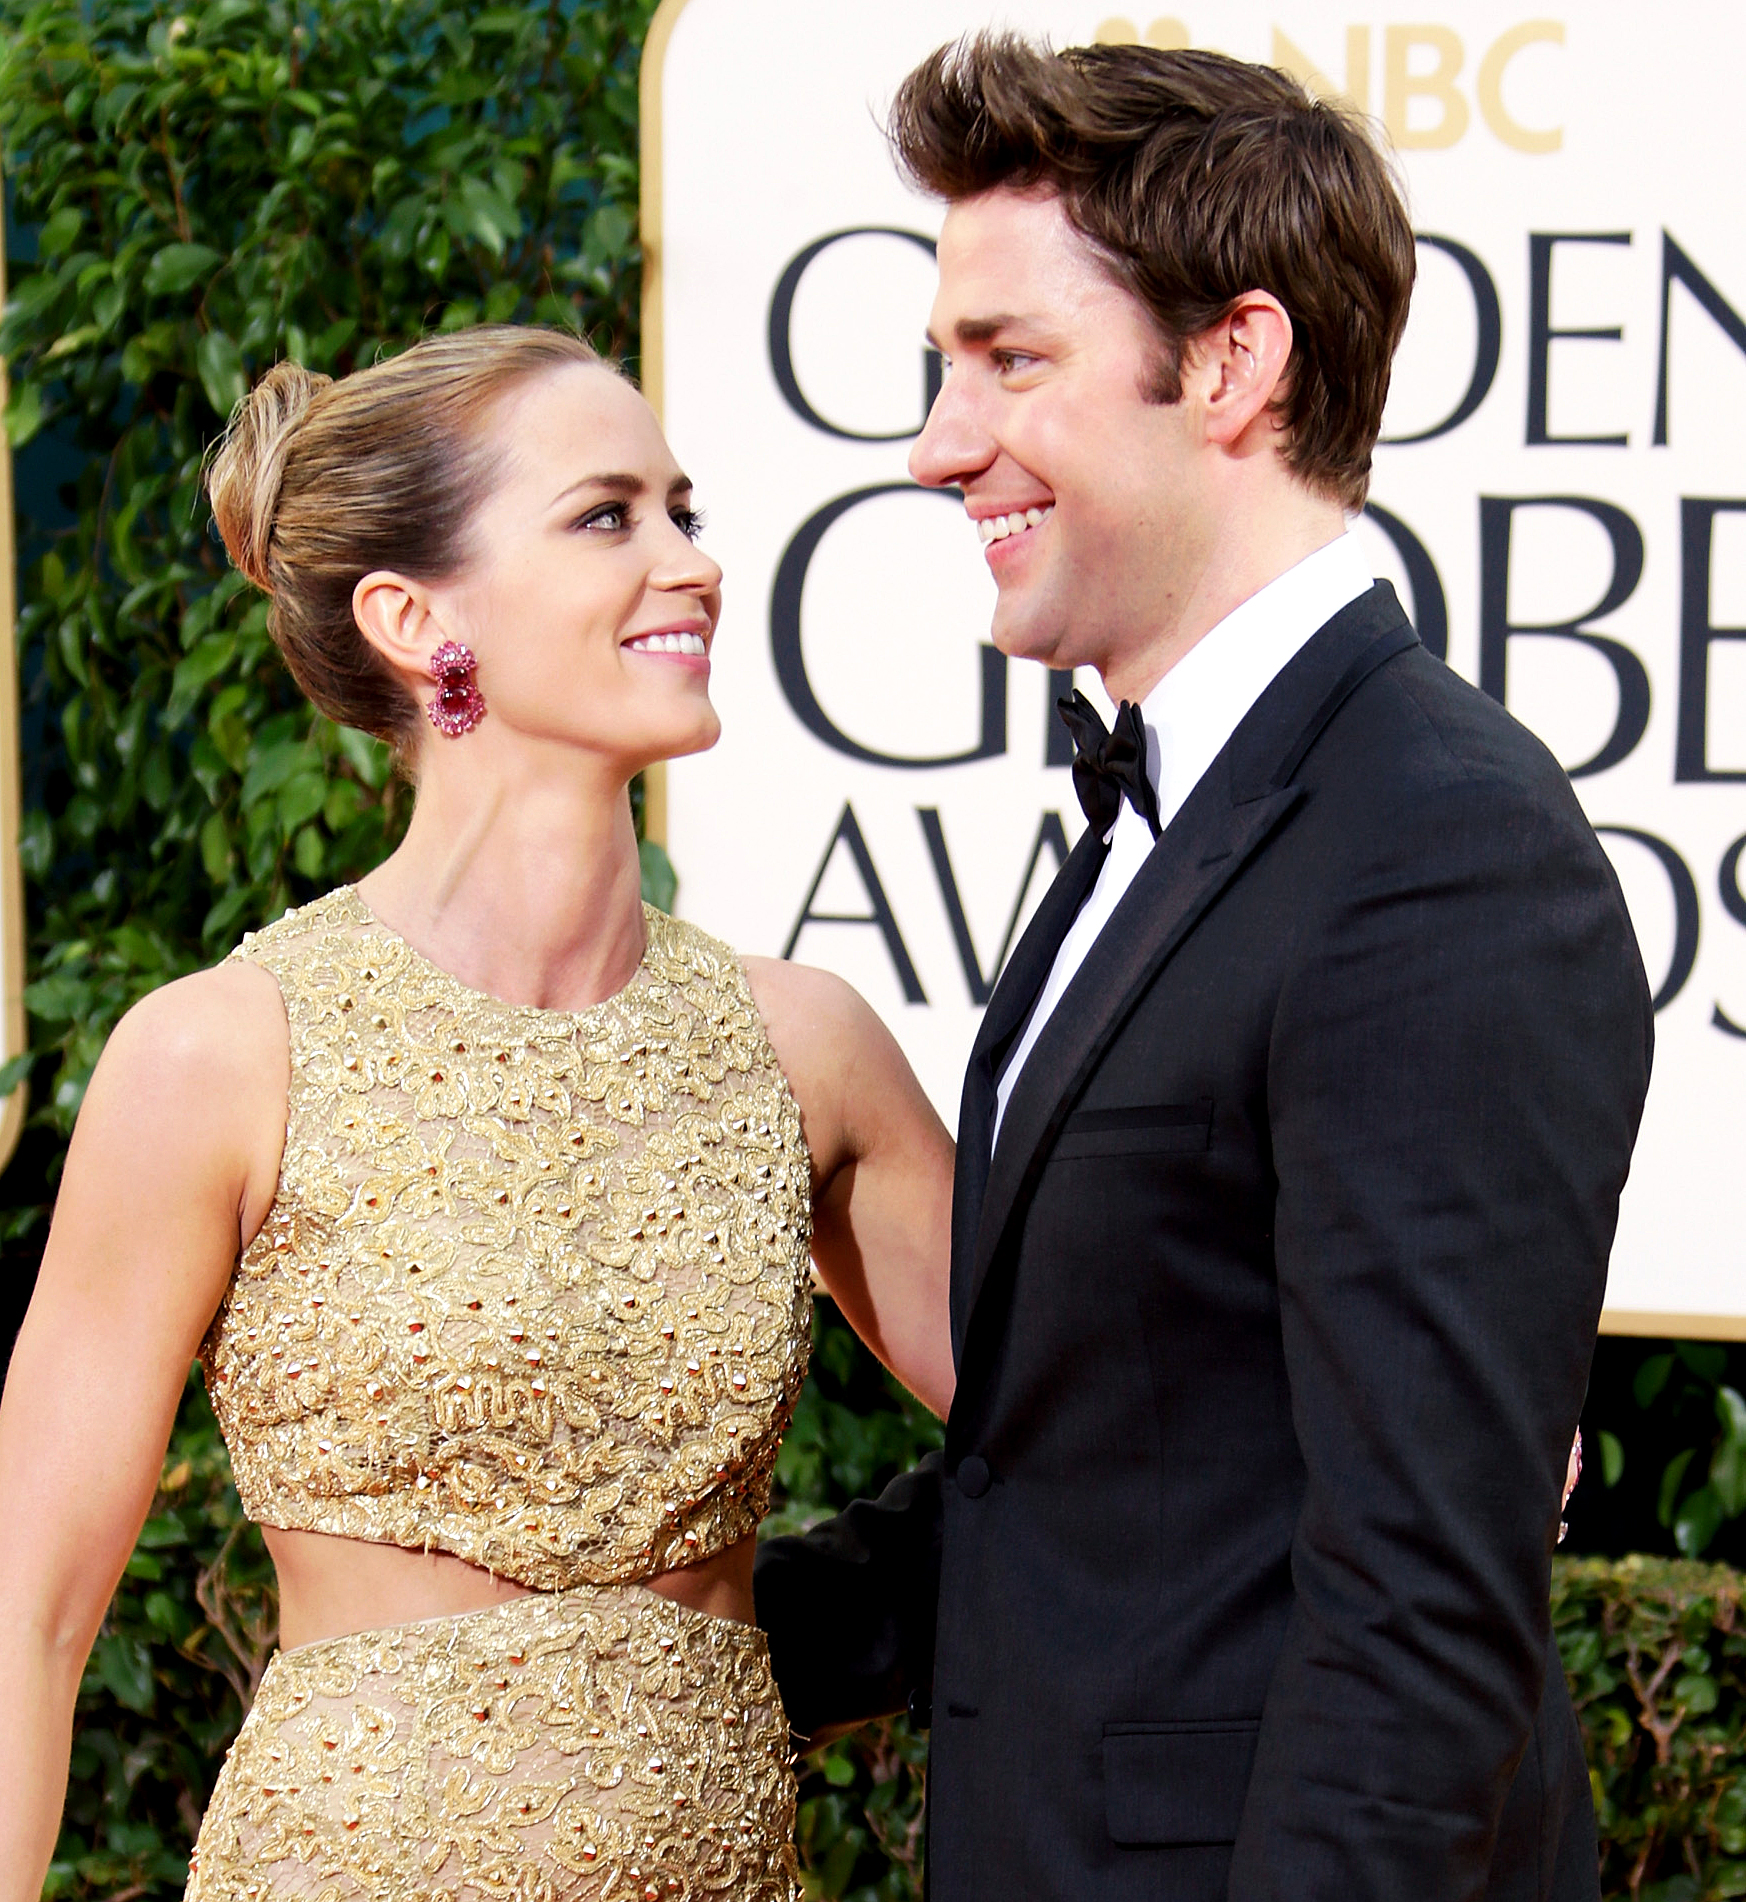 """John-Krasinski-and-Emily-Blunt-love-quotes - """"Totally selfishly, [sex] is so much better for me being jacked because you feel so much more confident and you see yourself as this much more sexual person, which is really fun,"""" Krasinski told Elle magazine in September 2016 after buffing up for his role in 13 Hours ."""